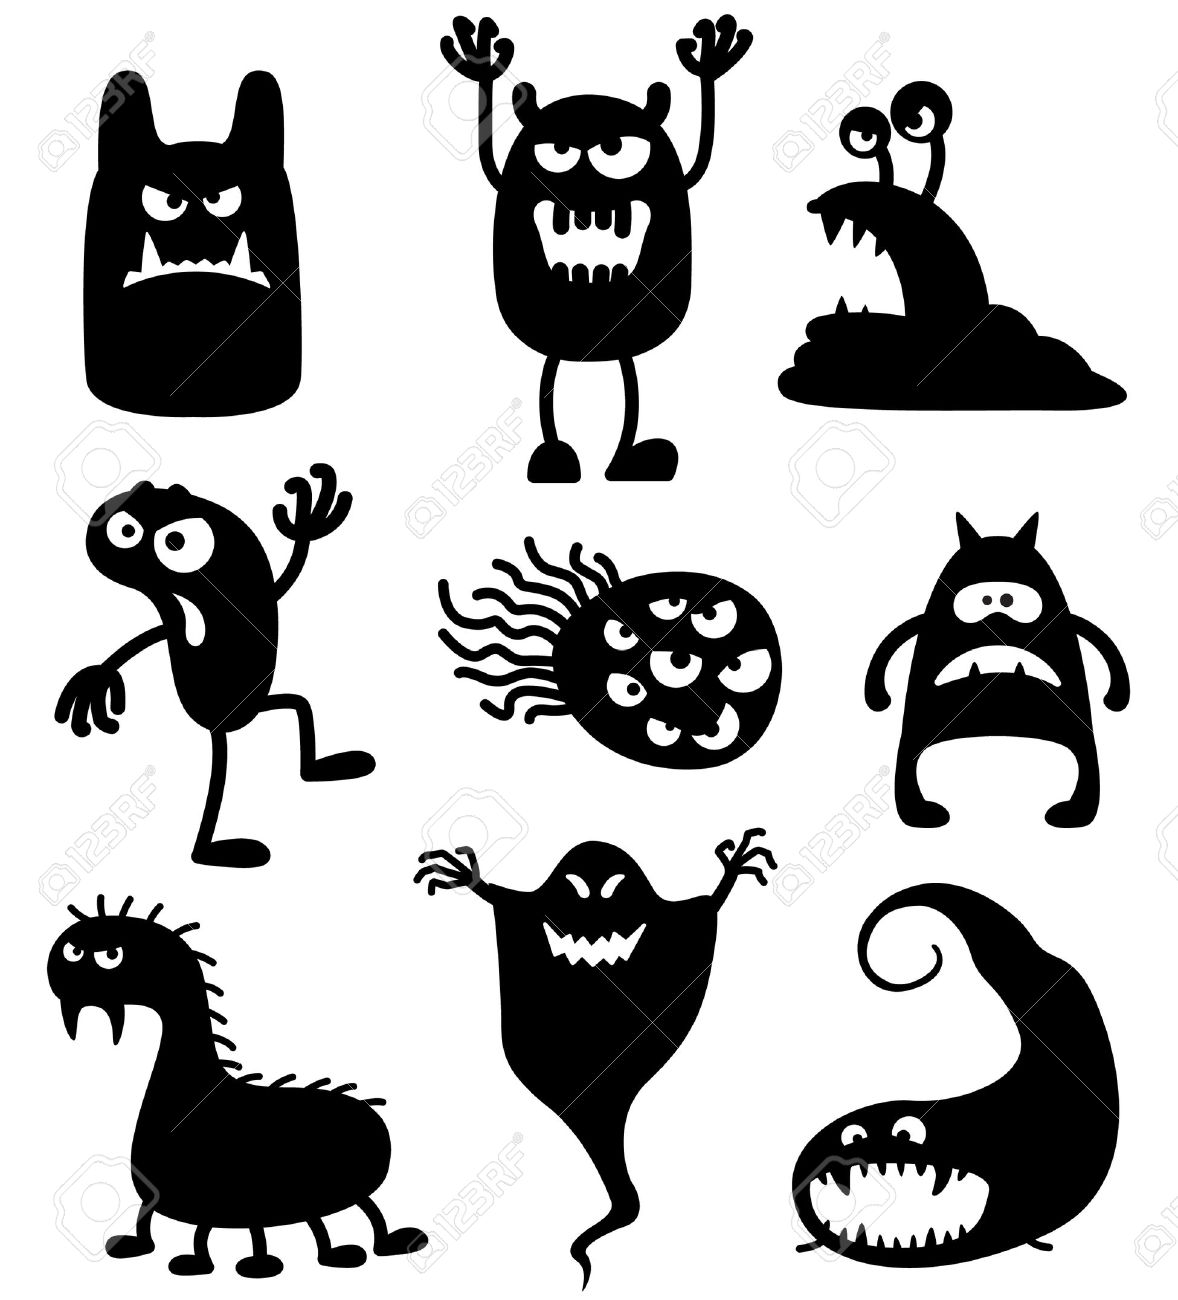 Silhouettes Of Cute Doodle Monsters.